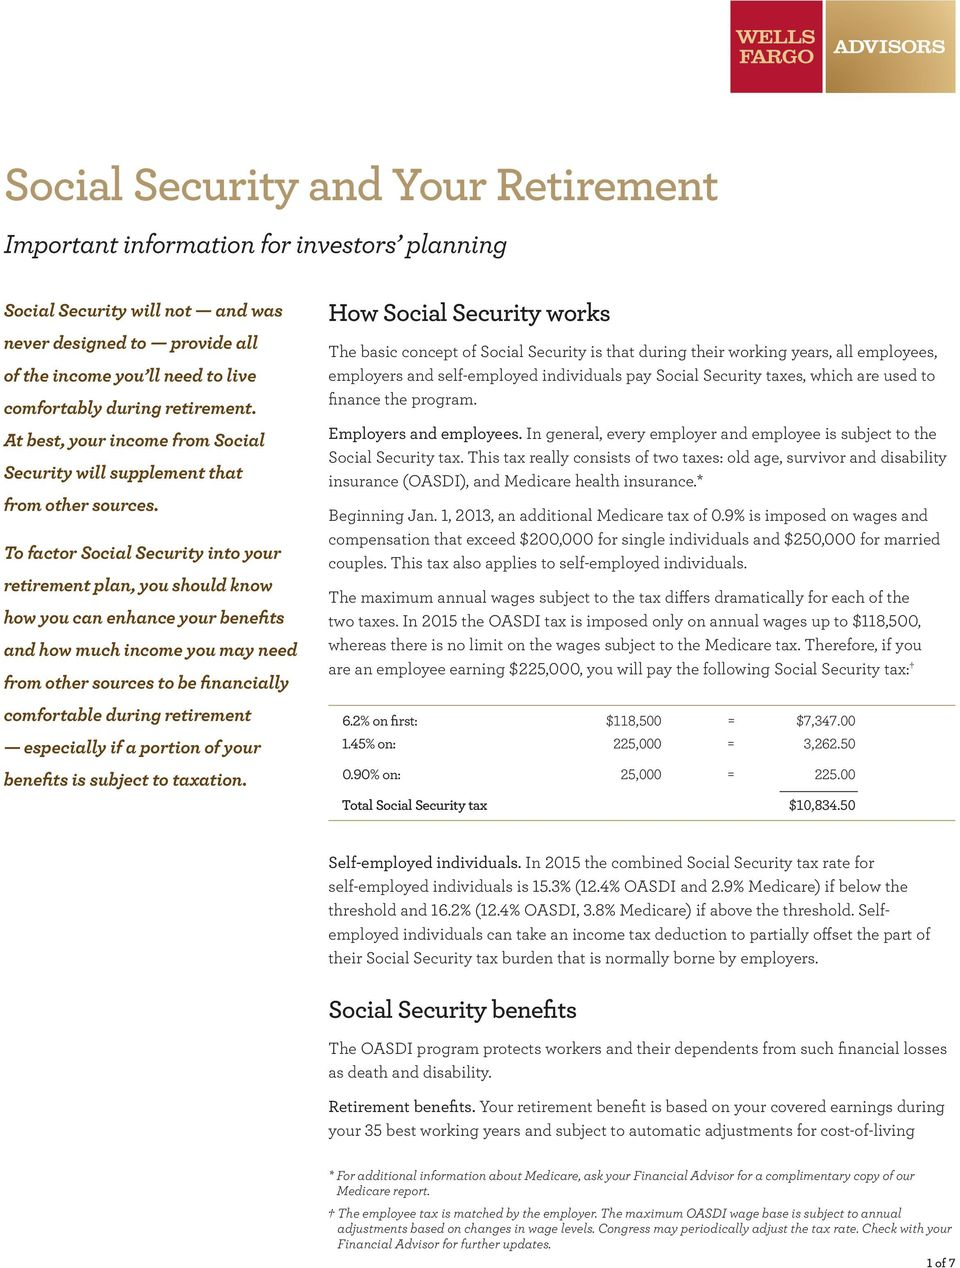 To factor Social Security into your retirement plan, you should know how you can enhance your benefits and how much income you may need from other sources to be financially comfortable during